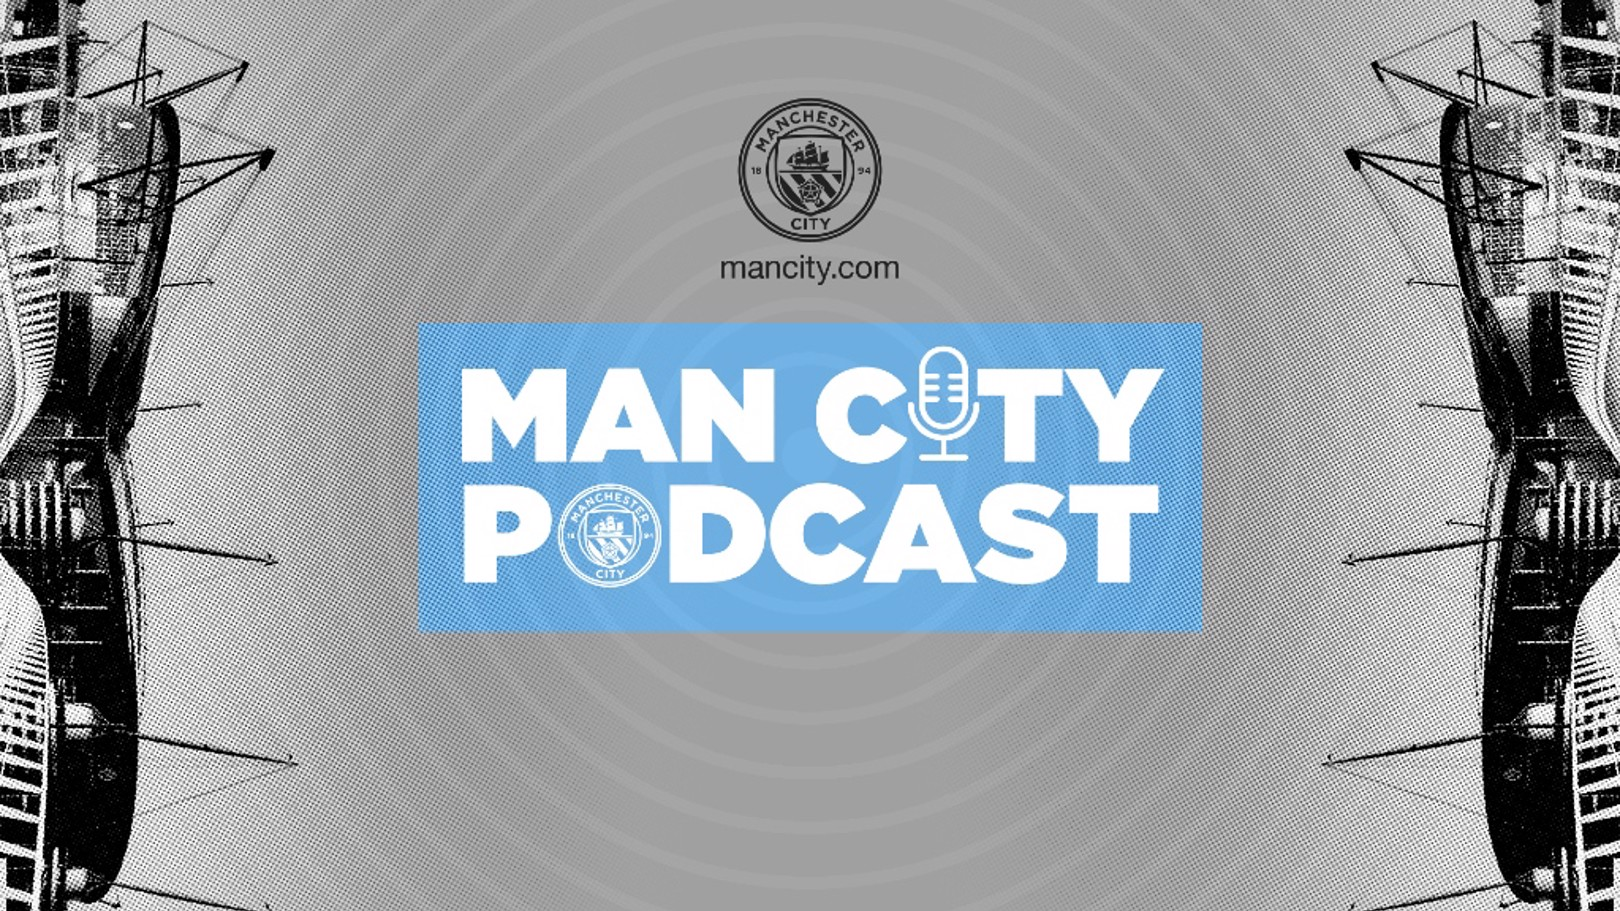 Manchester City launch official podcast